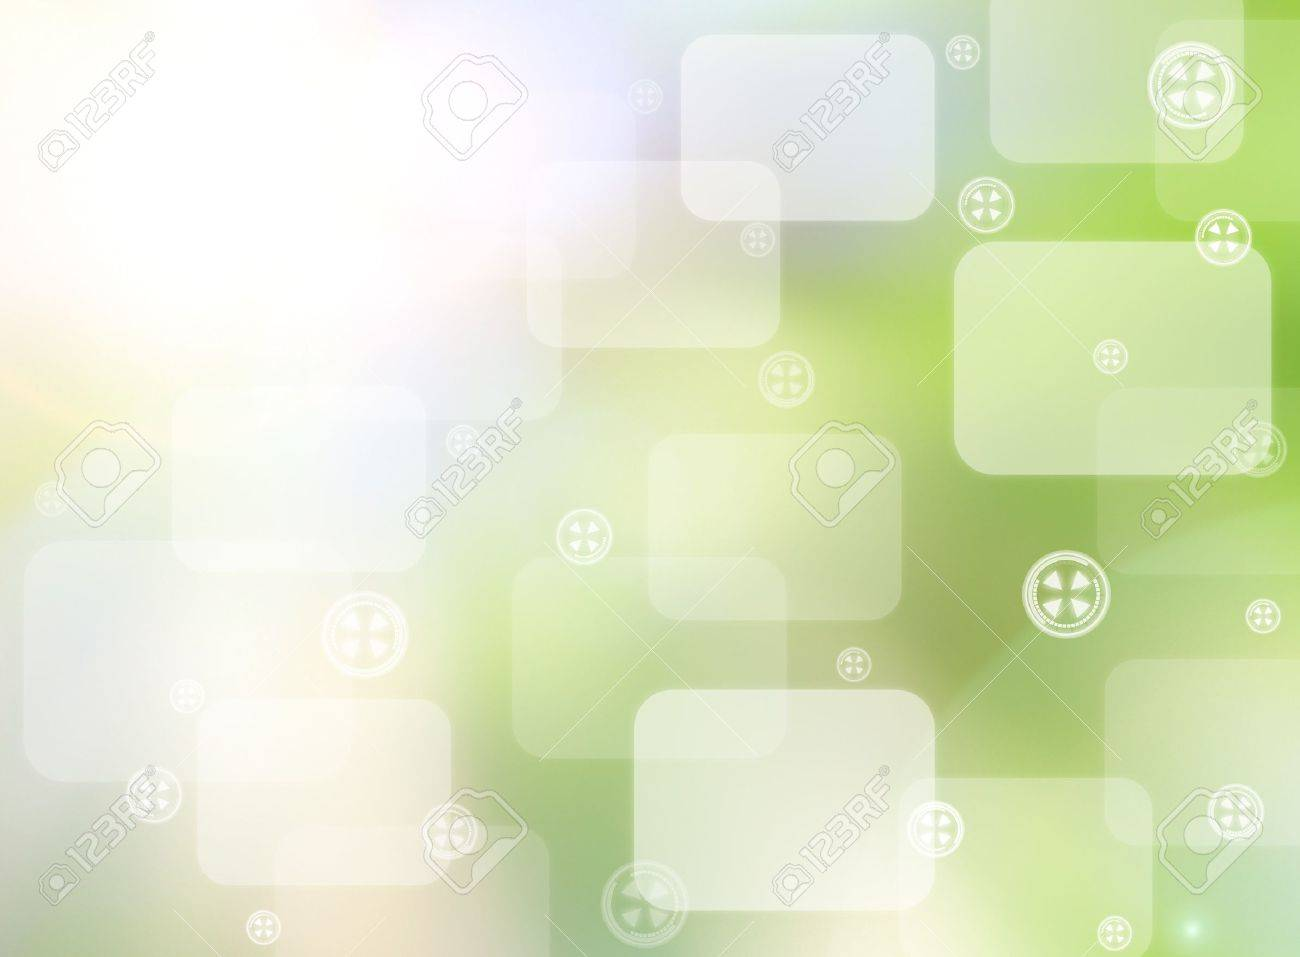 abstract world technology background - 14098478